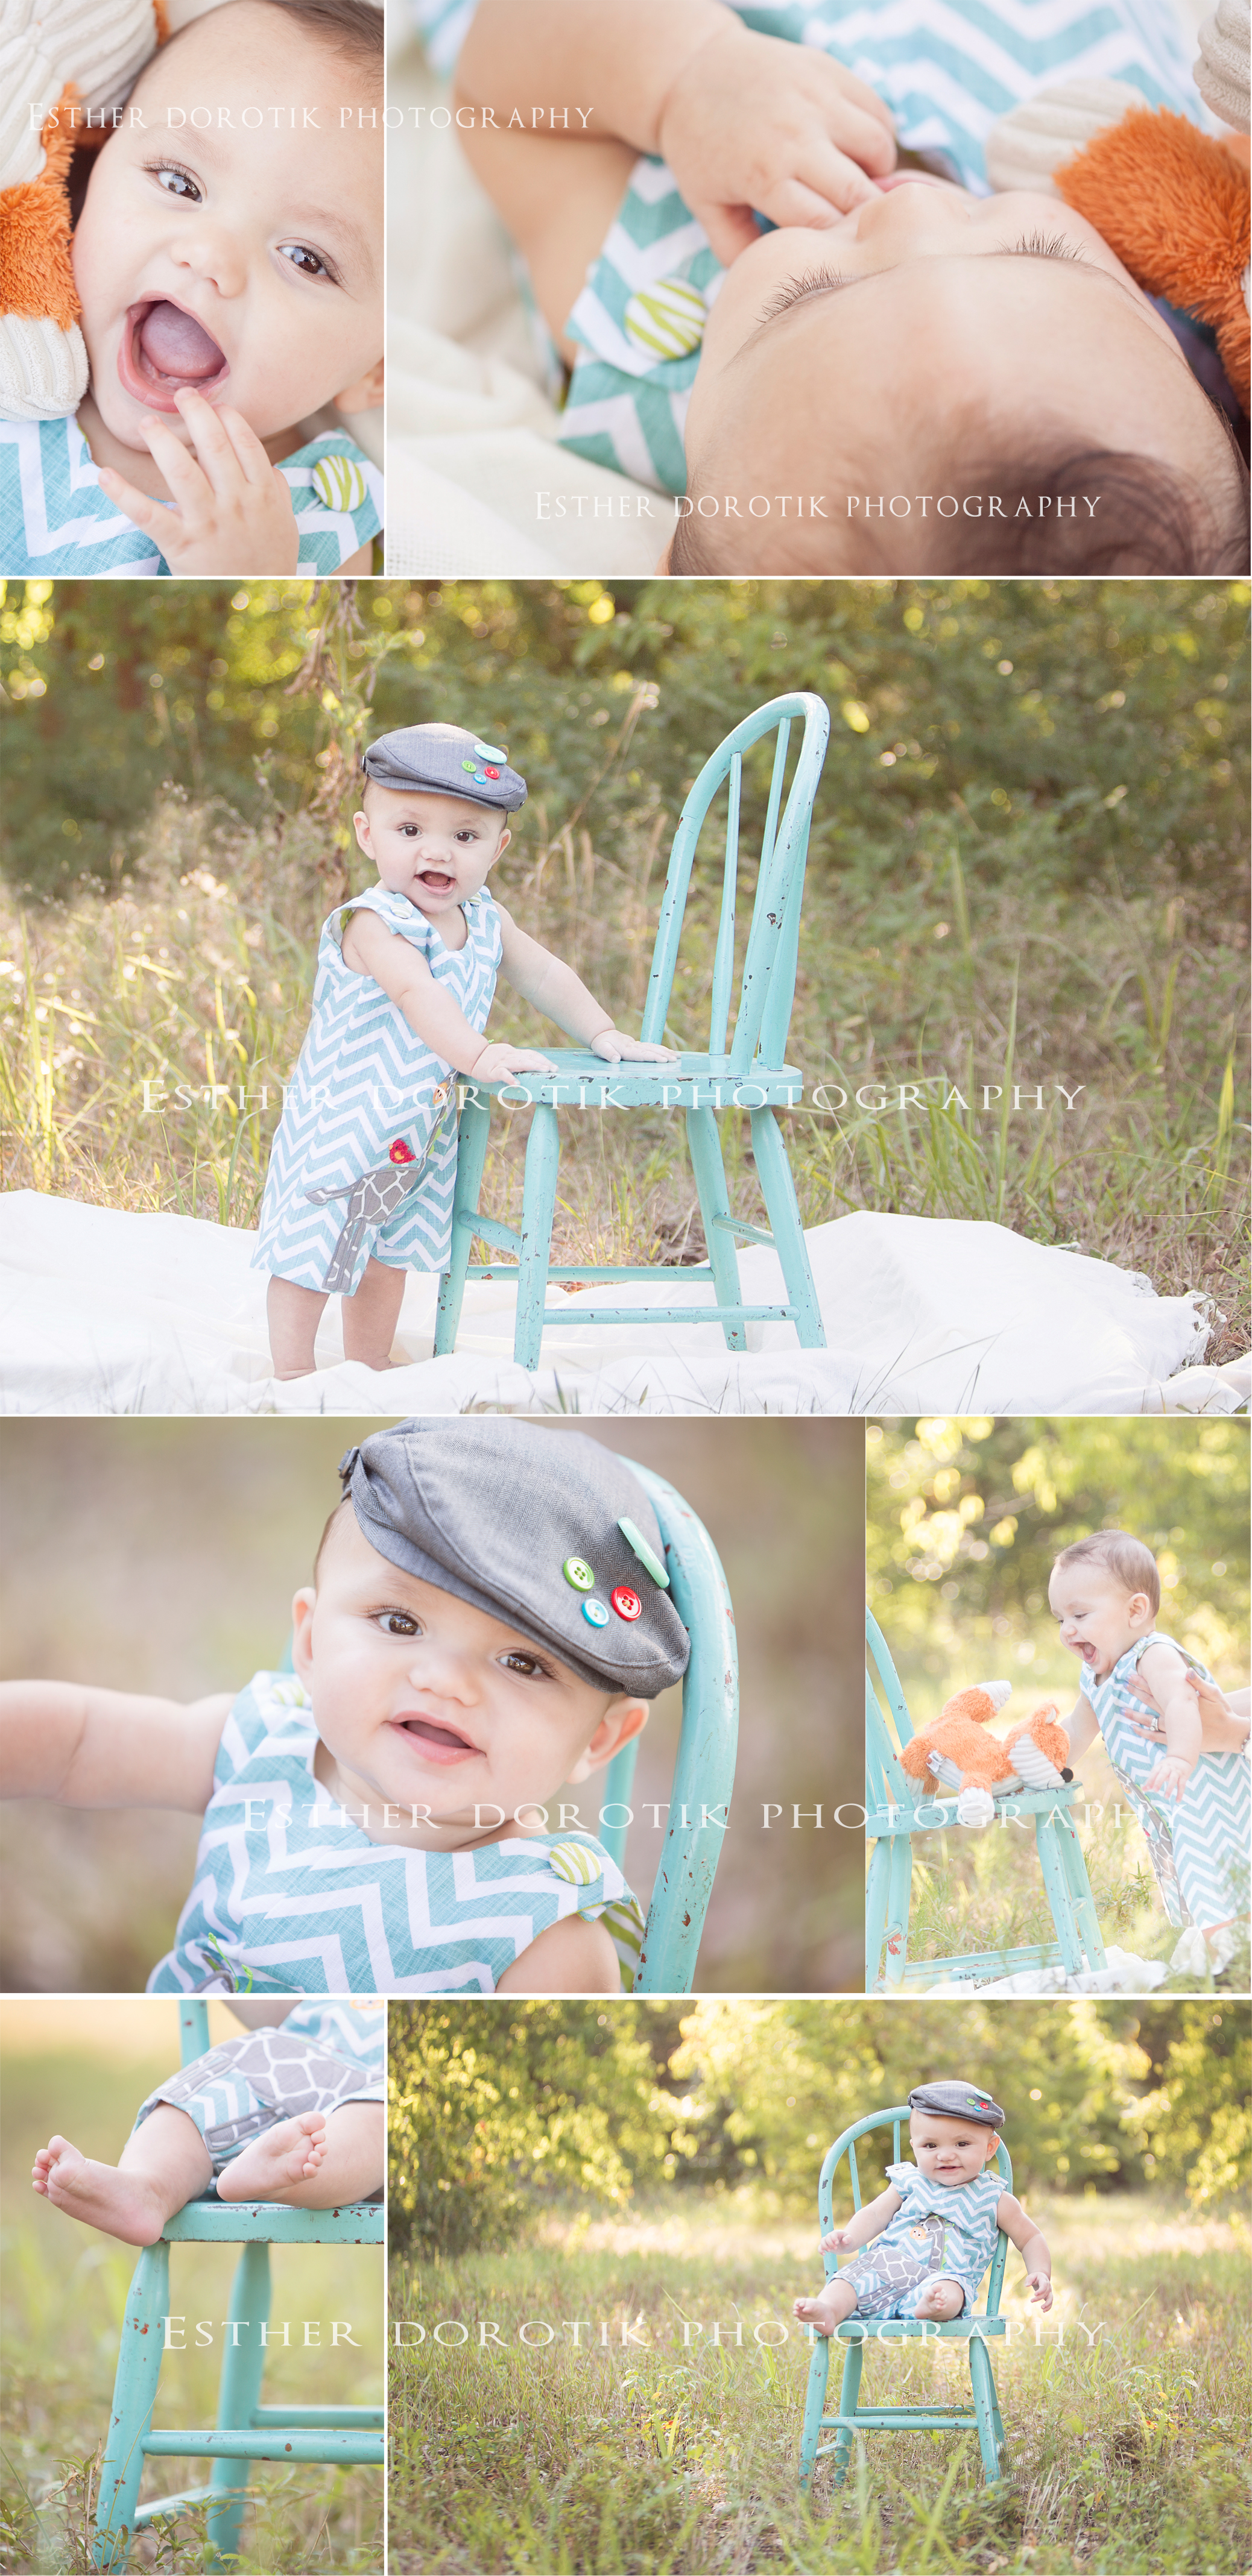 6-month-baby-photography-of-little-boy-sitting-in-teal-chair-in-bright-field-by-Fort-Worth-baby-photographer